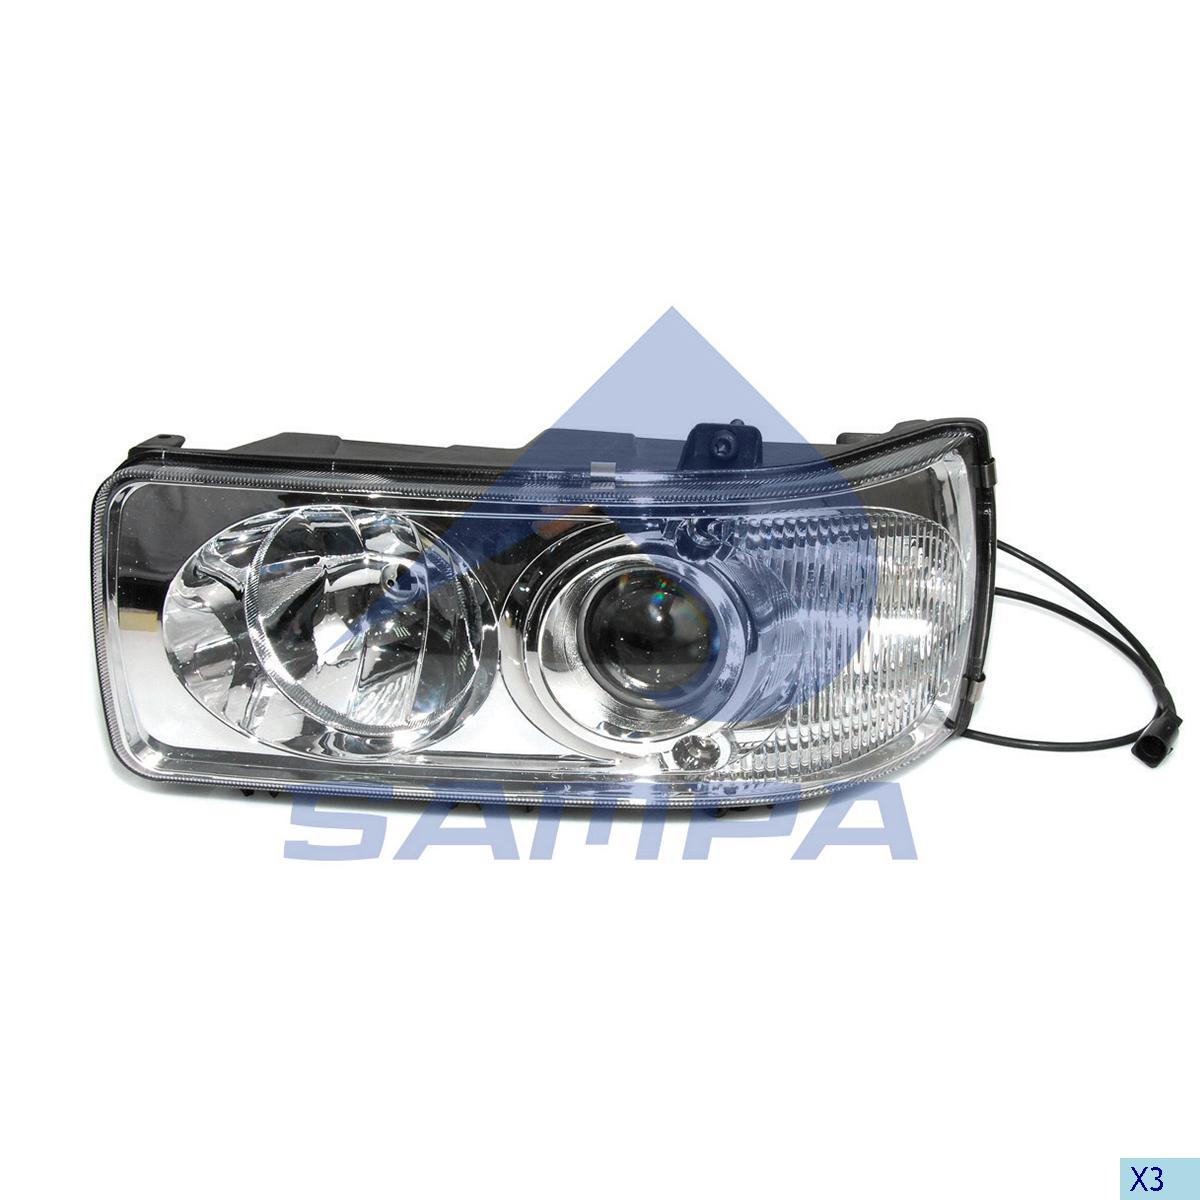 Head Lamp, Daf, Electric System